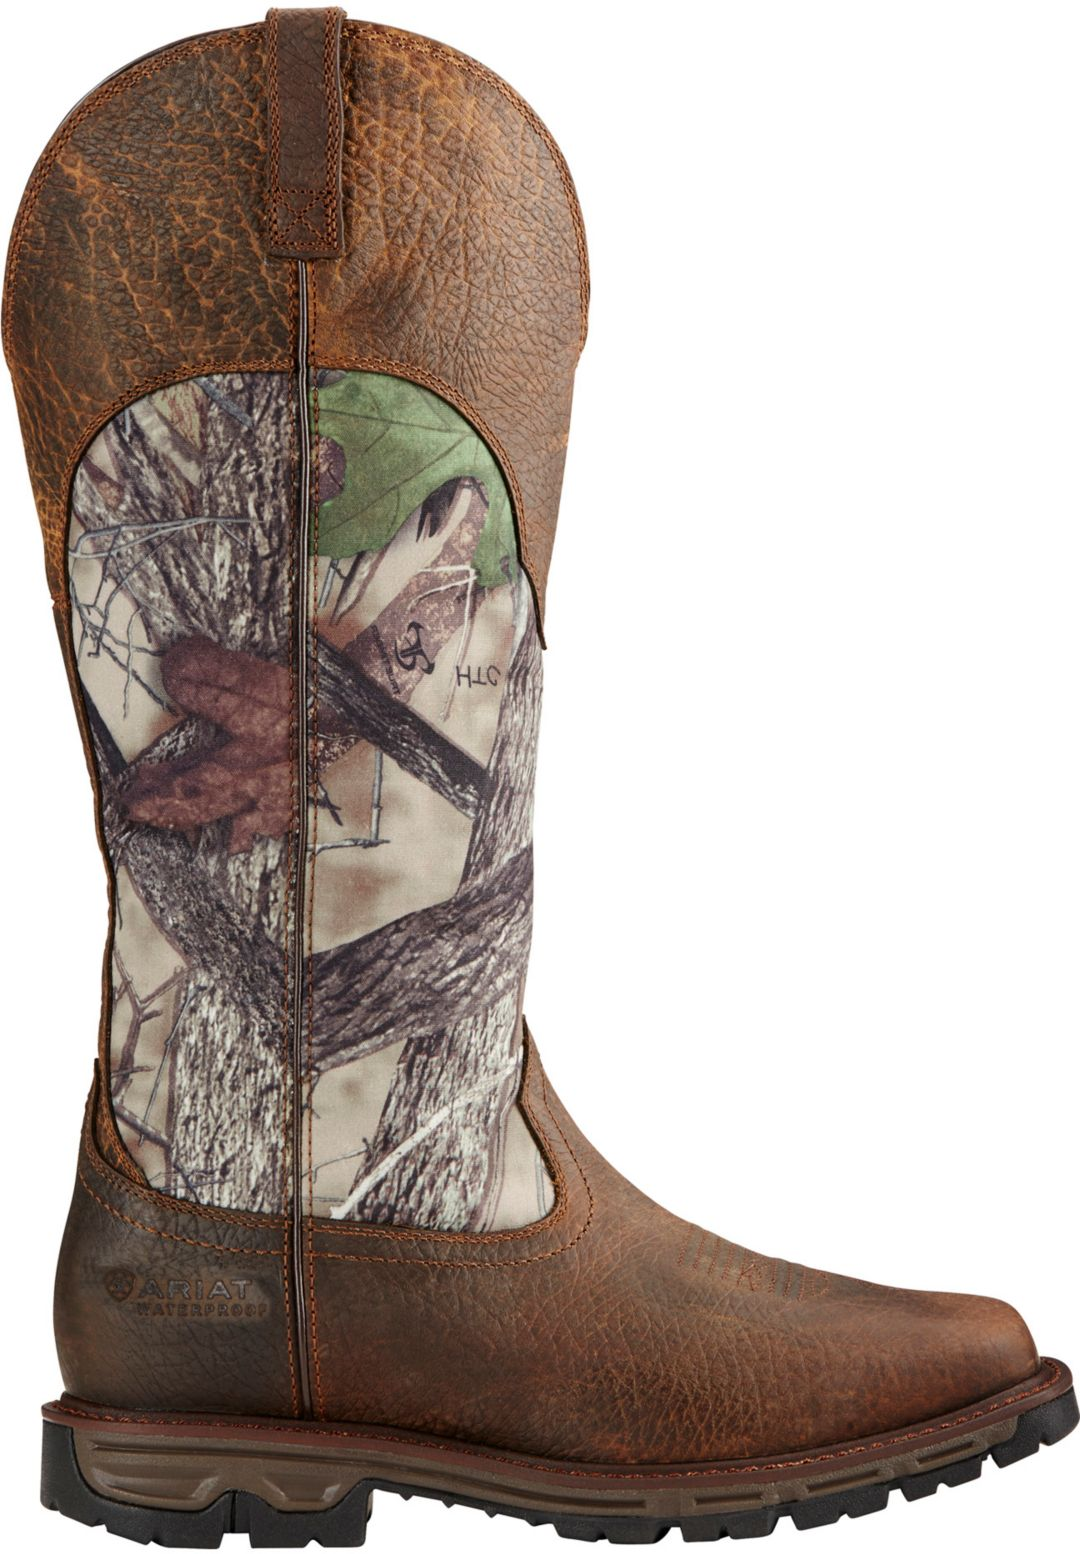 b35f3deee7e20 Ariat Men's Conquest Snake H2O Waterproof Hunting Boots | Field & Stream